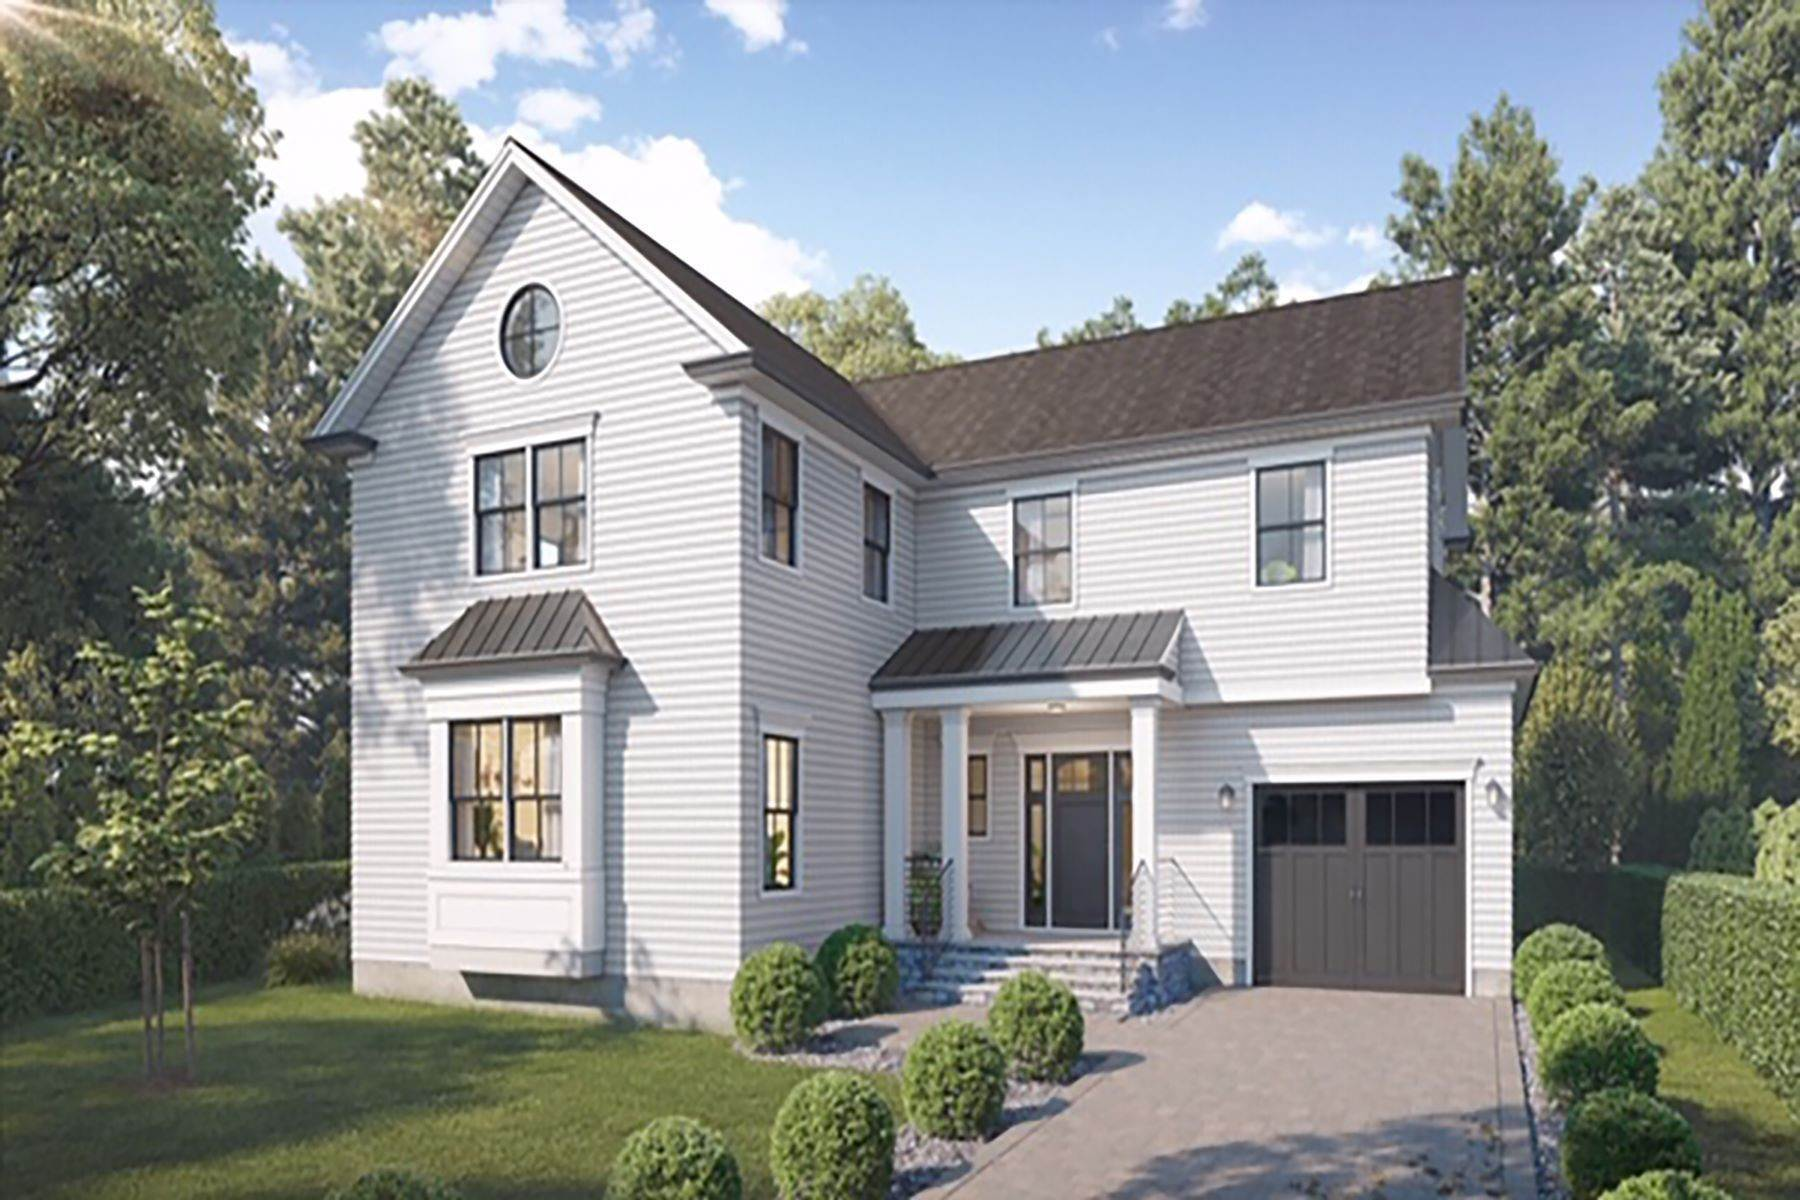 Single Family Homes for Sale at New Construction in Shore Acres 561 Shore Acres Drive Mamaroneck, New York 10543 United States